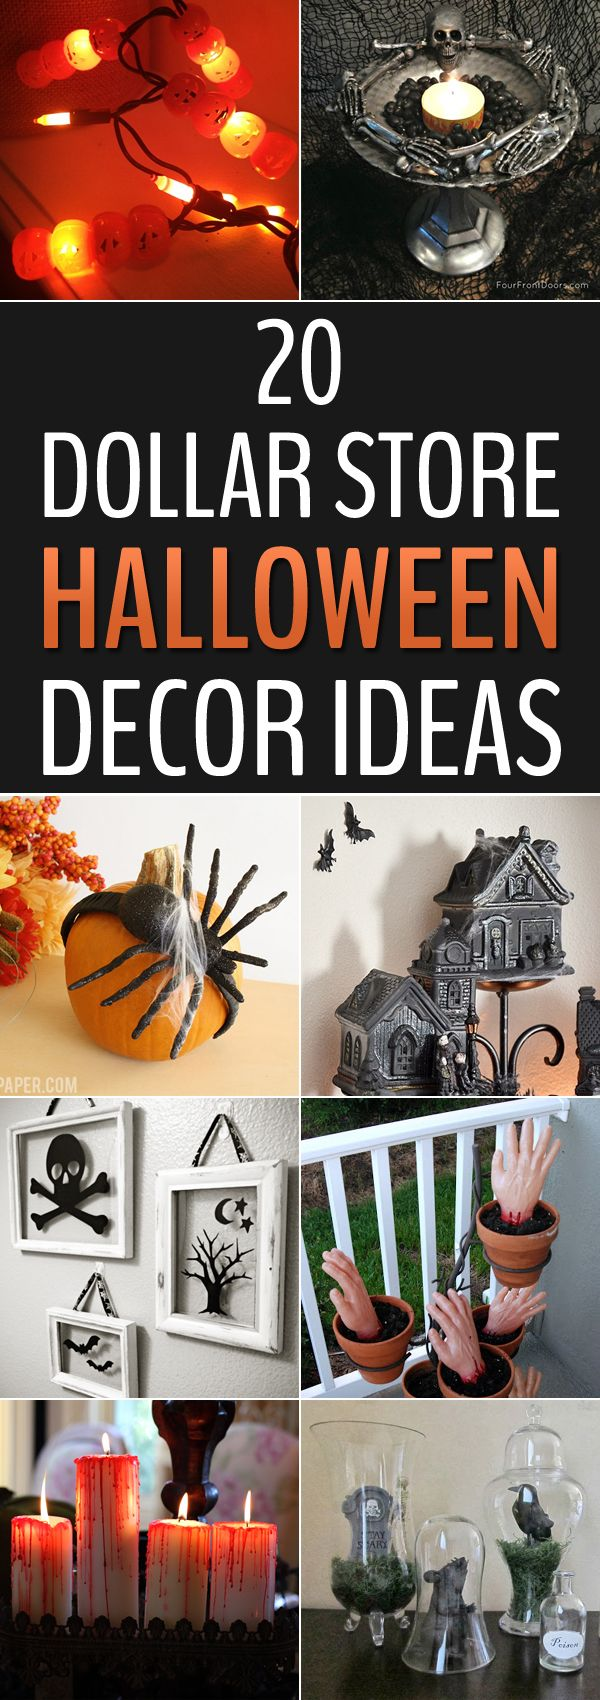 the best diy halloween decor ideas using cheap supplies from the dollar store - Cheap Halloween Decor Ideas